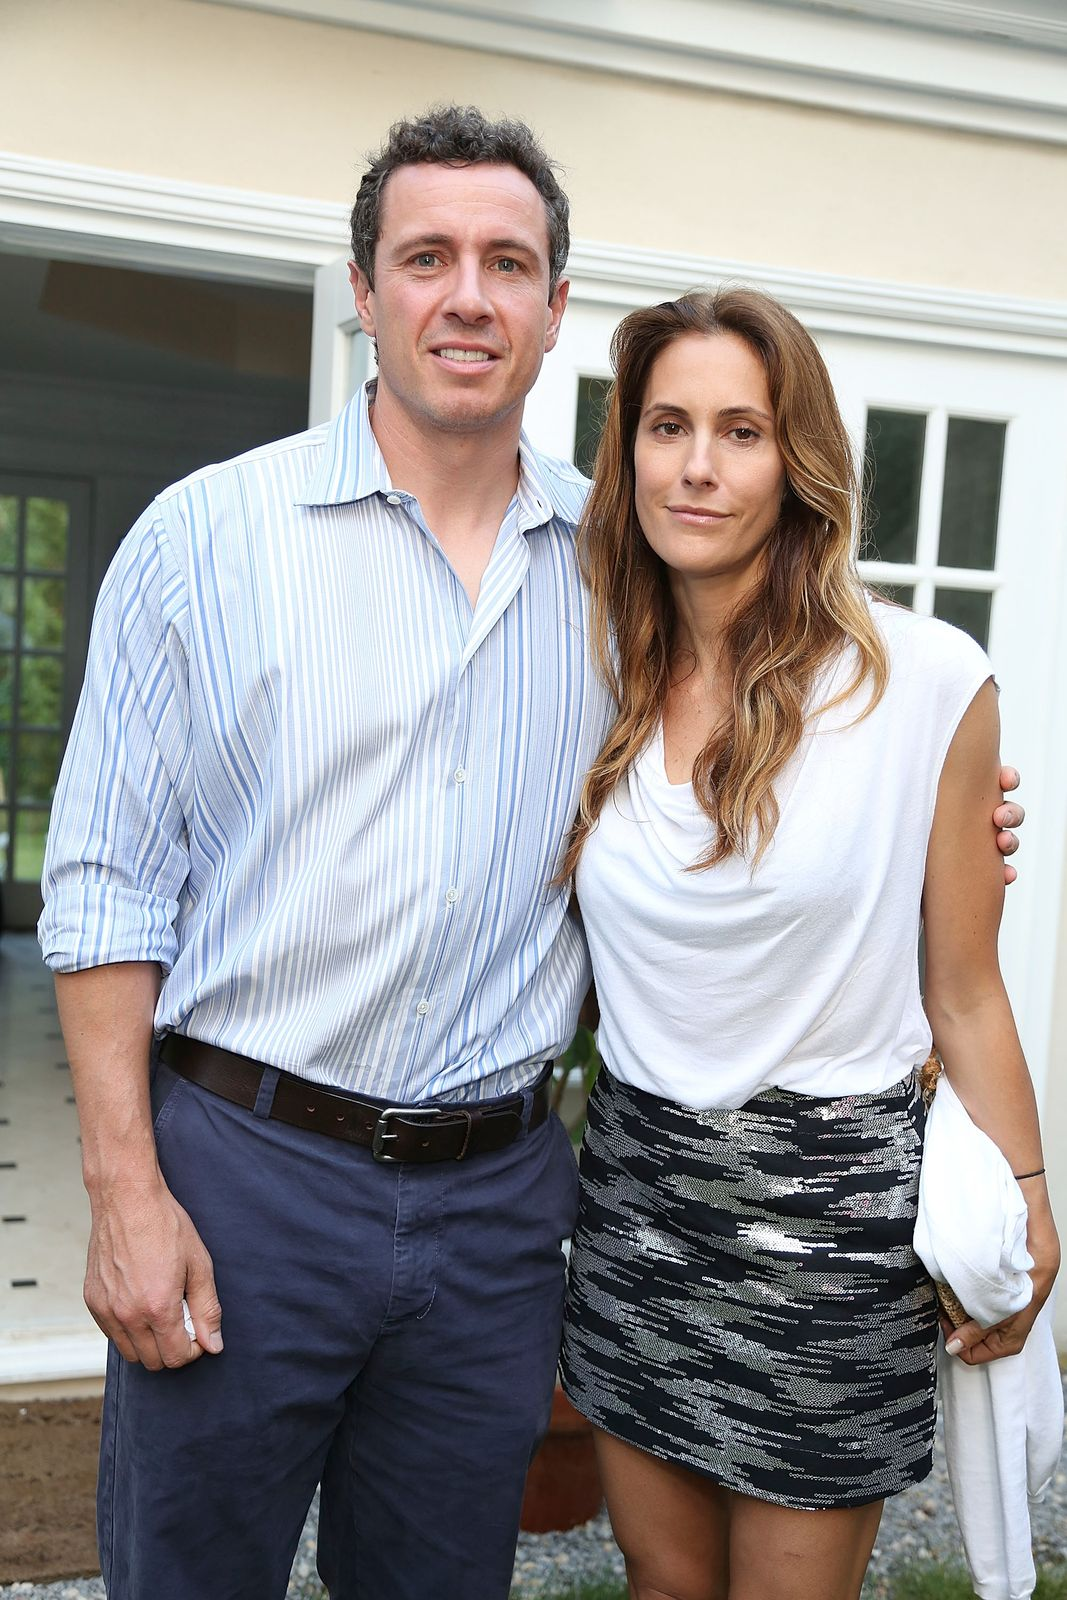 """Chrisand Christina Cuomo atthe after-party for a Hamptons screening of """"The Way, Way Back"""" on June 29, 2013, in East Hampton, New York 